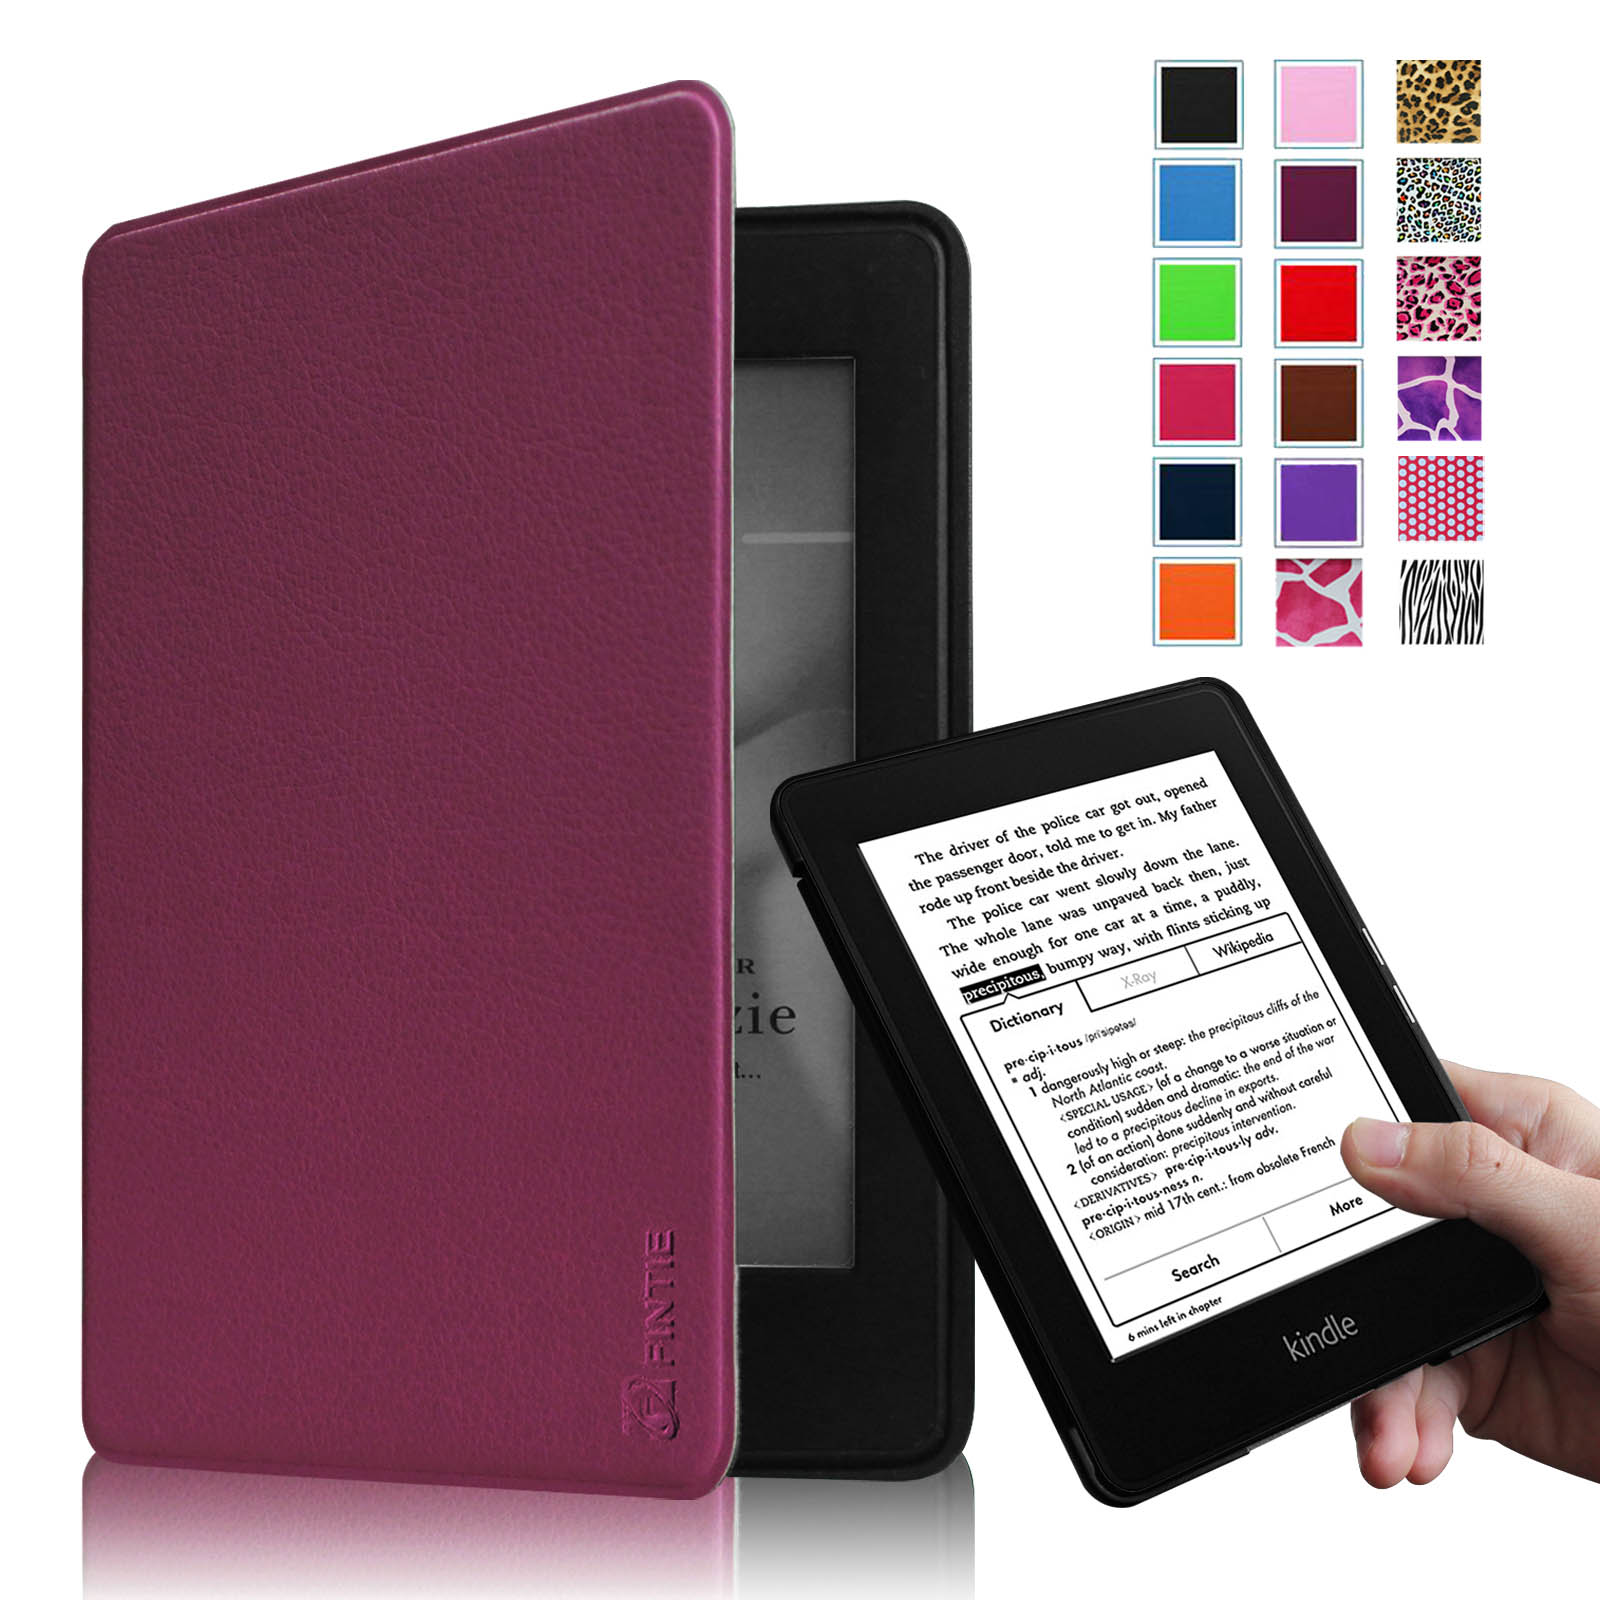 All-New Amazon Kindle Paperwhite Case - Fintie [Blade X1] Premium Protective Smart Shell Leather Cover, Purple